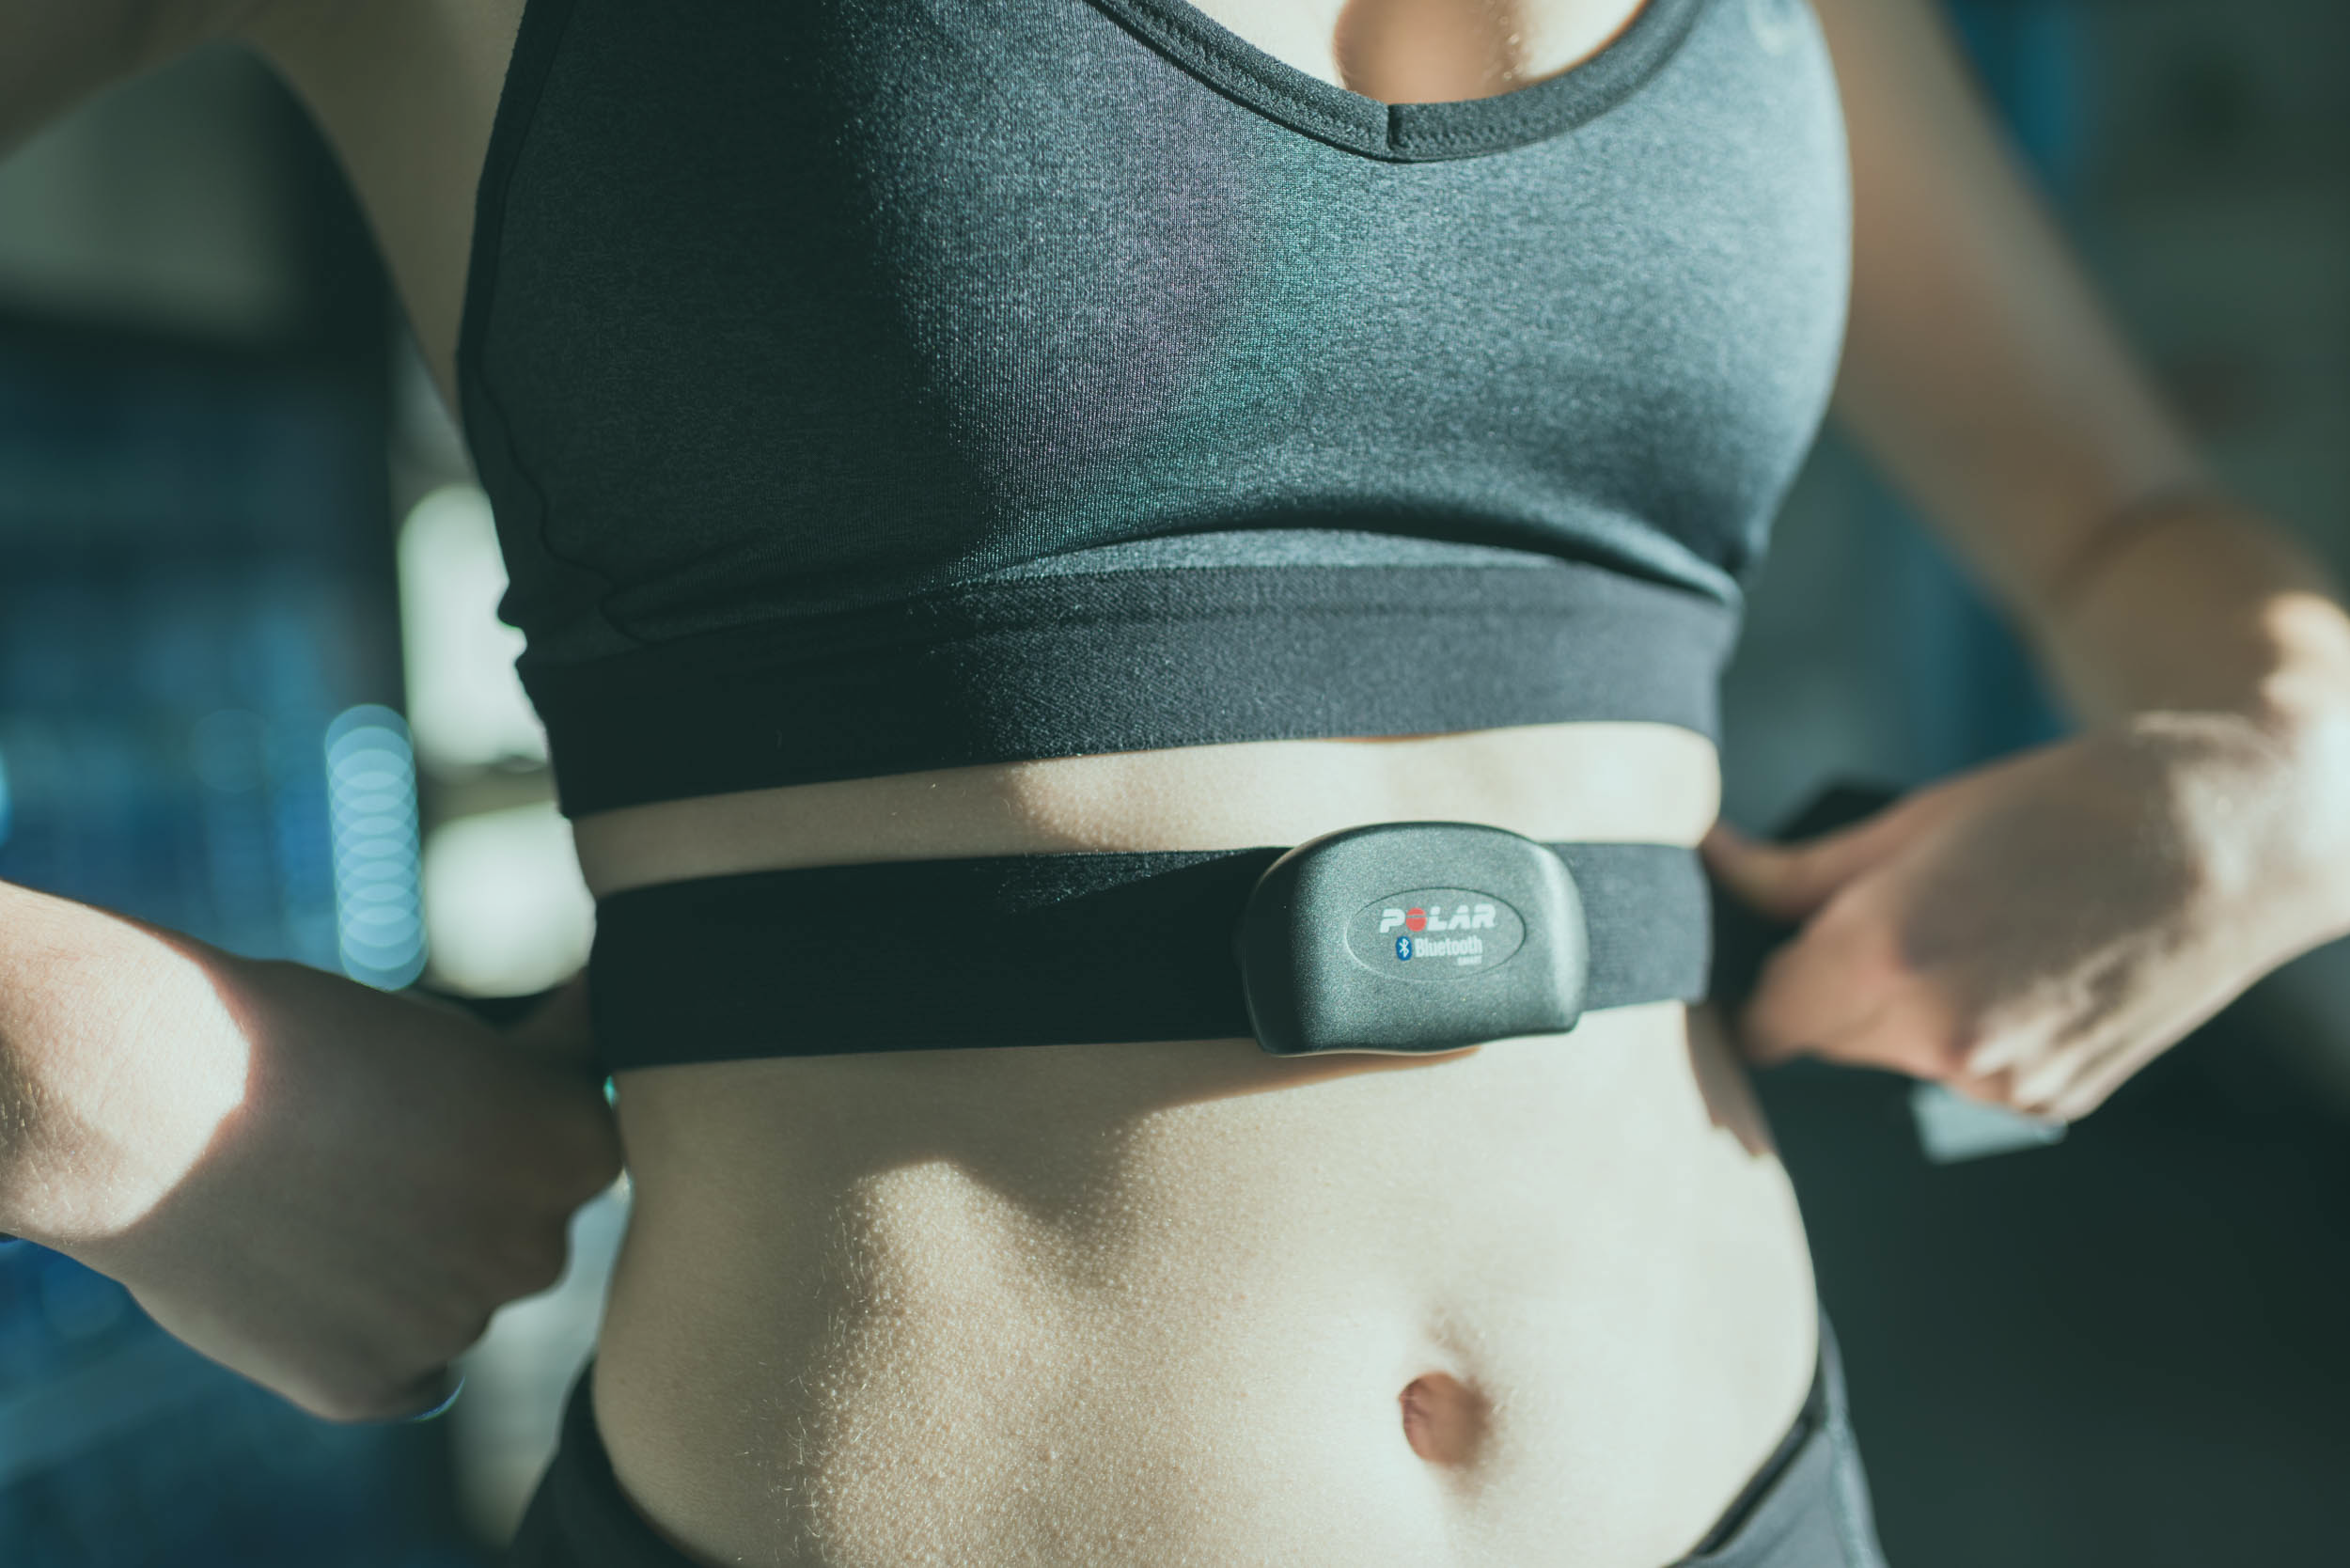 Heart Rate Monitors - Our heart rate monitors will ensure that you're getting the most out of your workout, while staying within your physical limits.